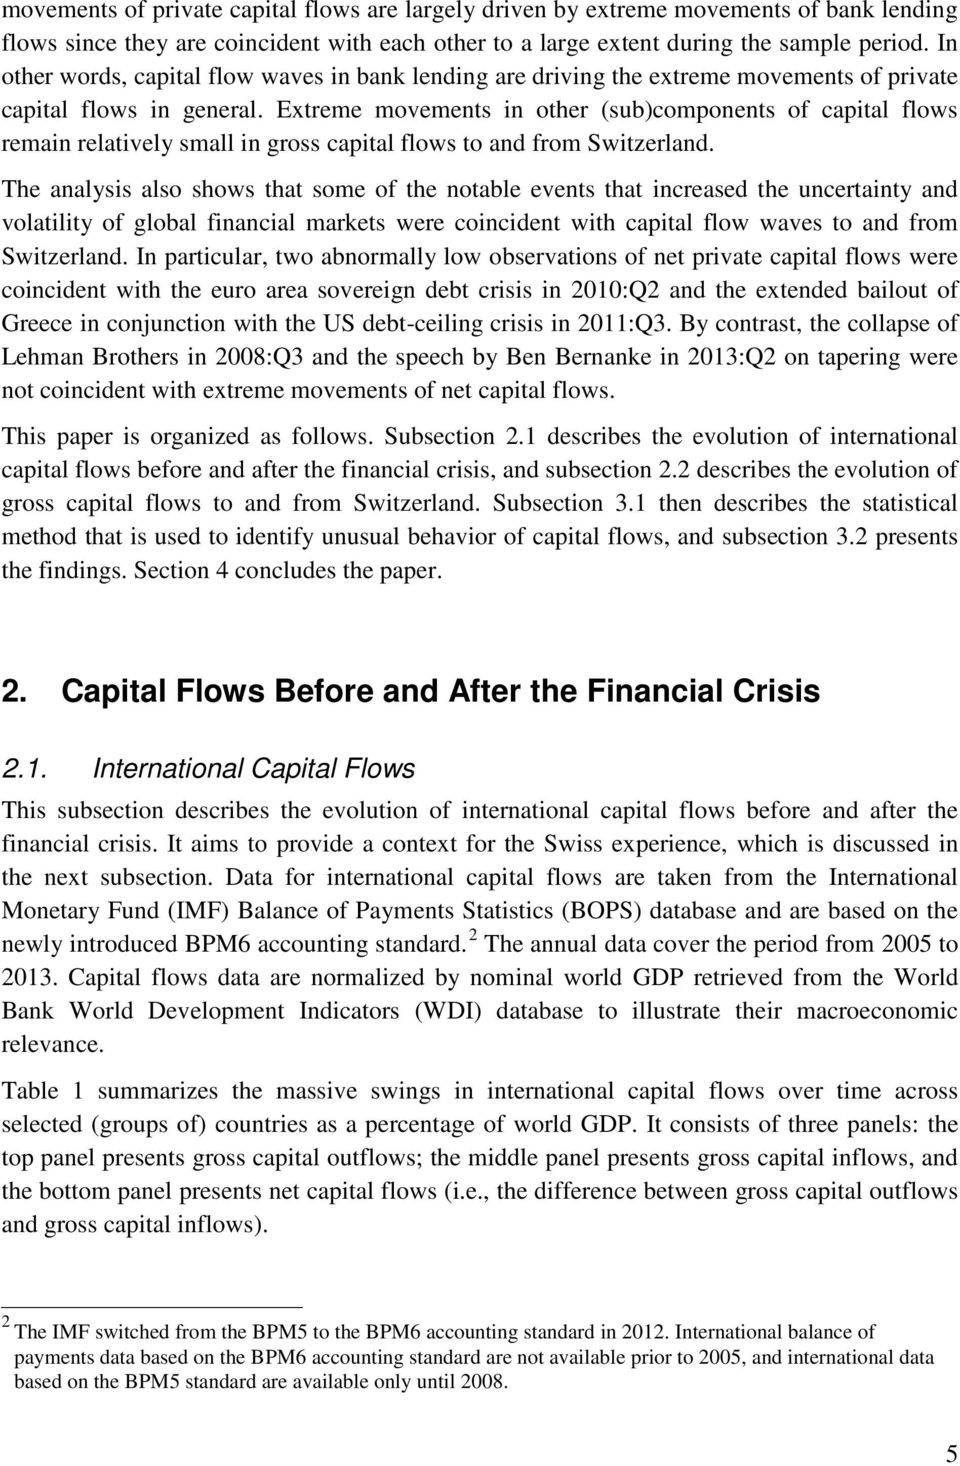 Extreme movements in other (sub)components of capital flows remain relatively small in gross capital flows to and from Switzerland.